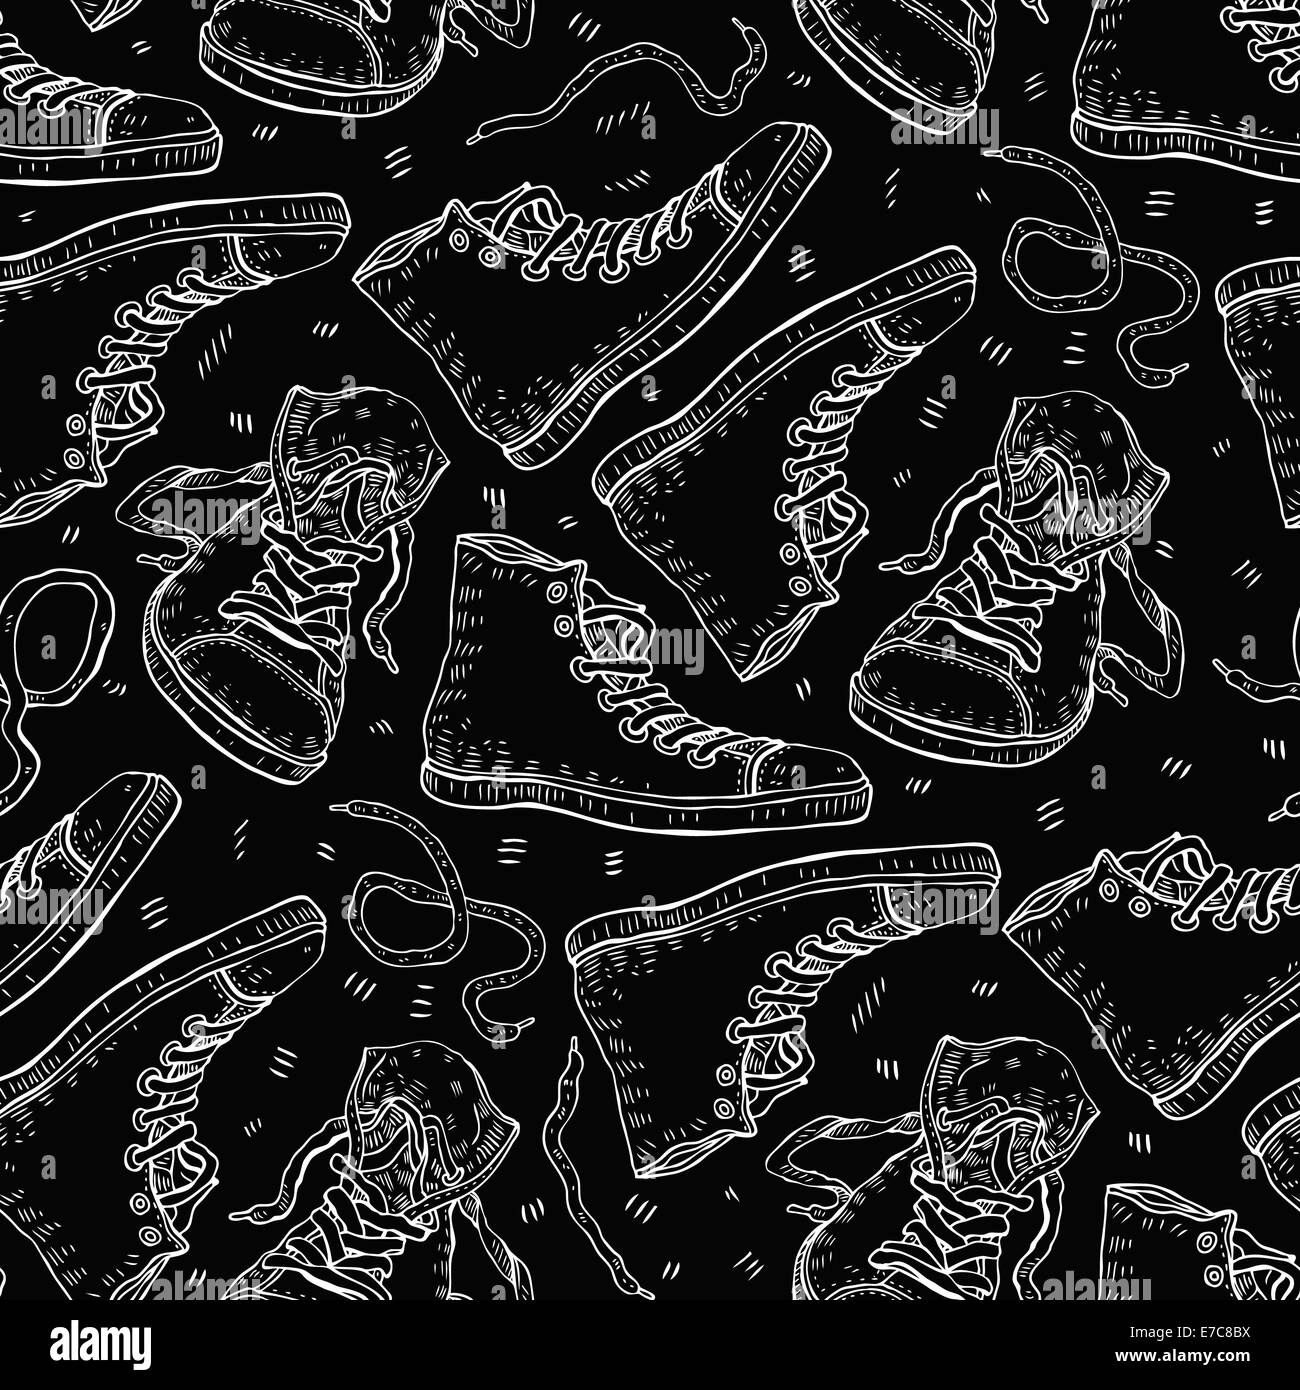 Sneakers. Seamless background. - Stock Image